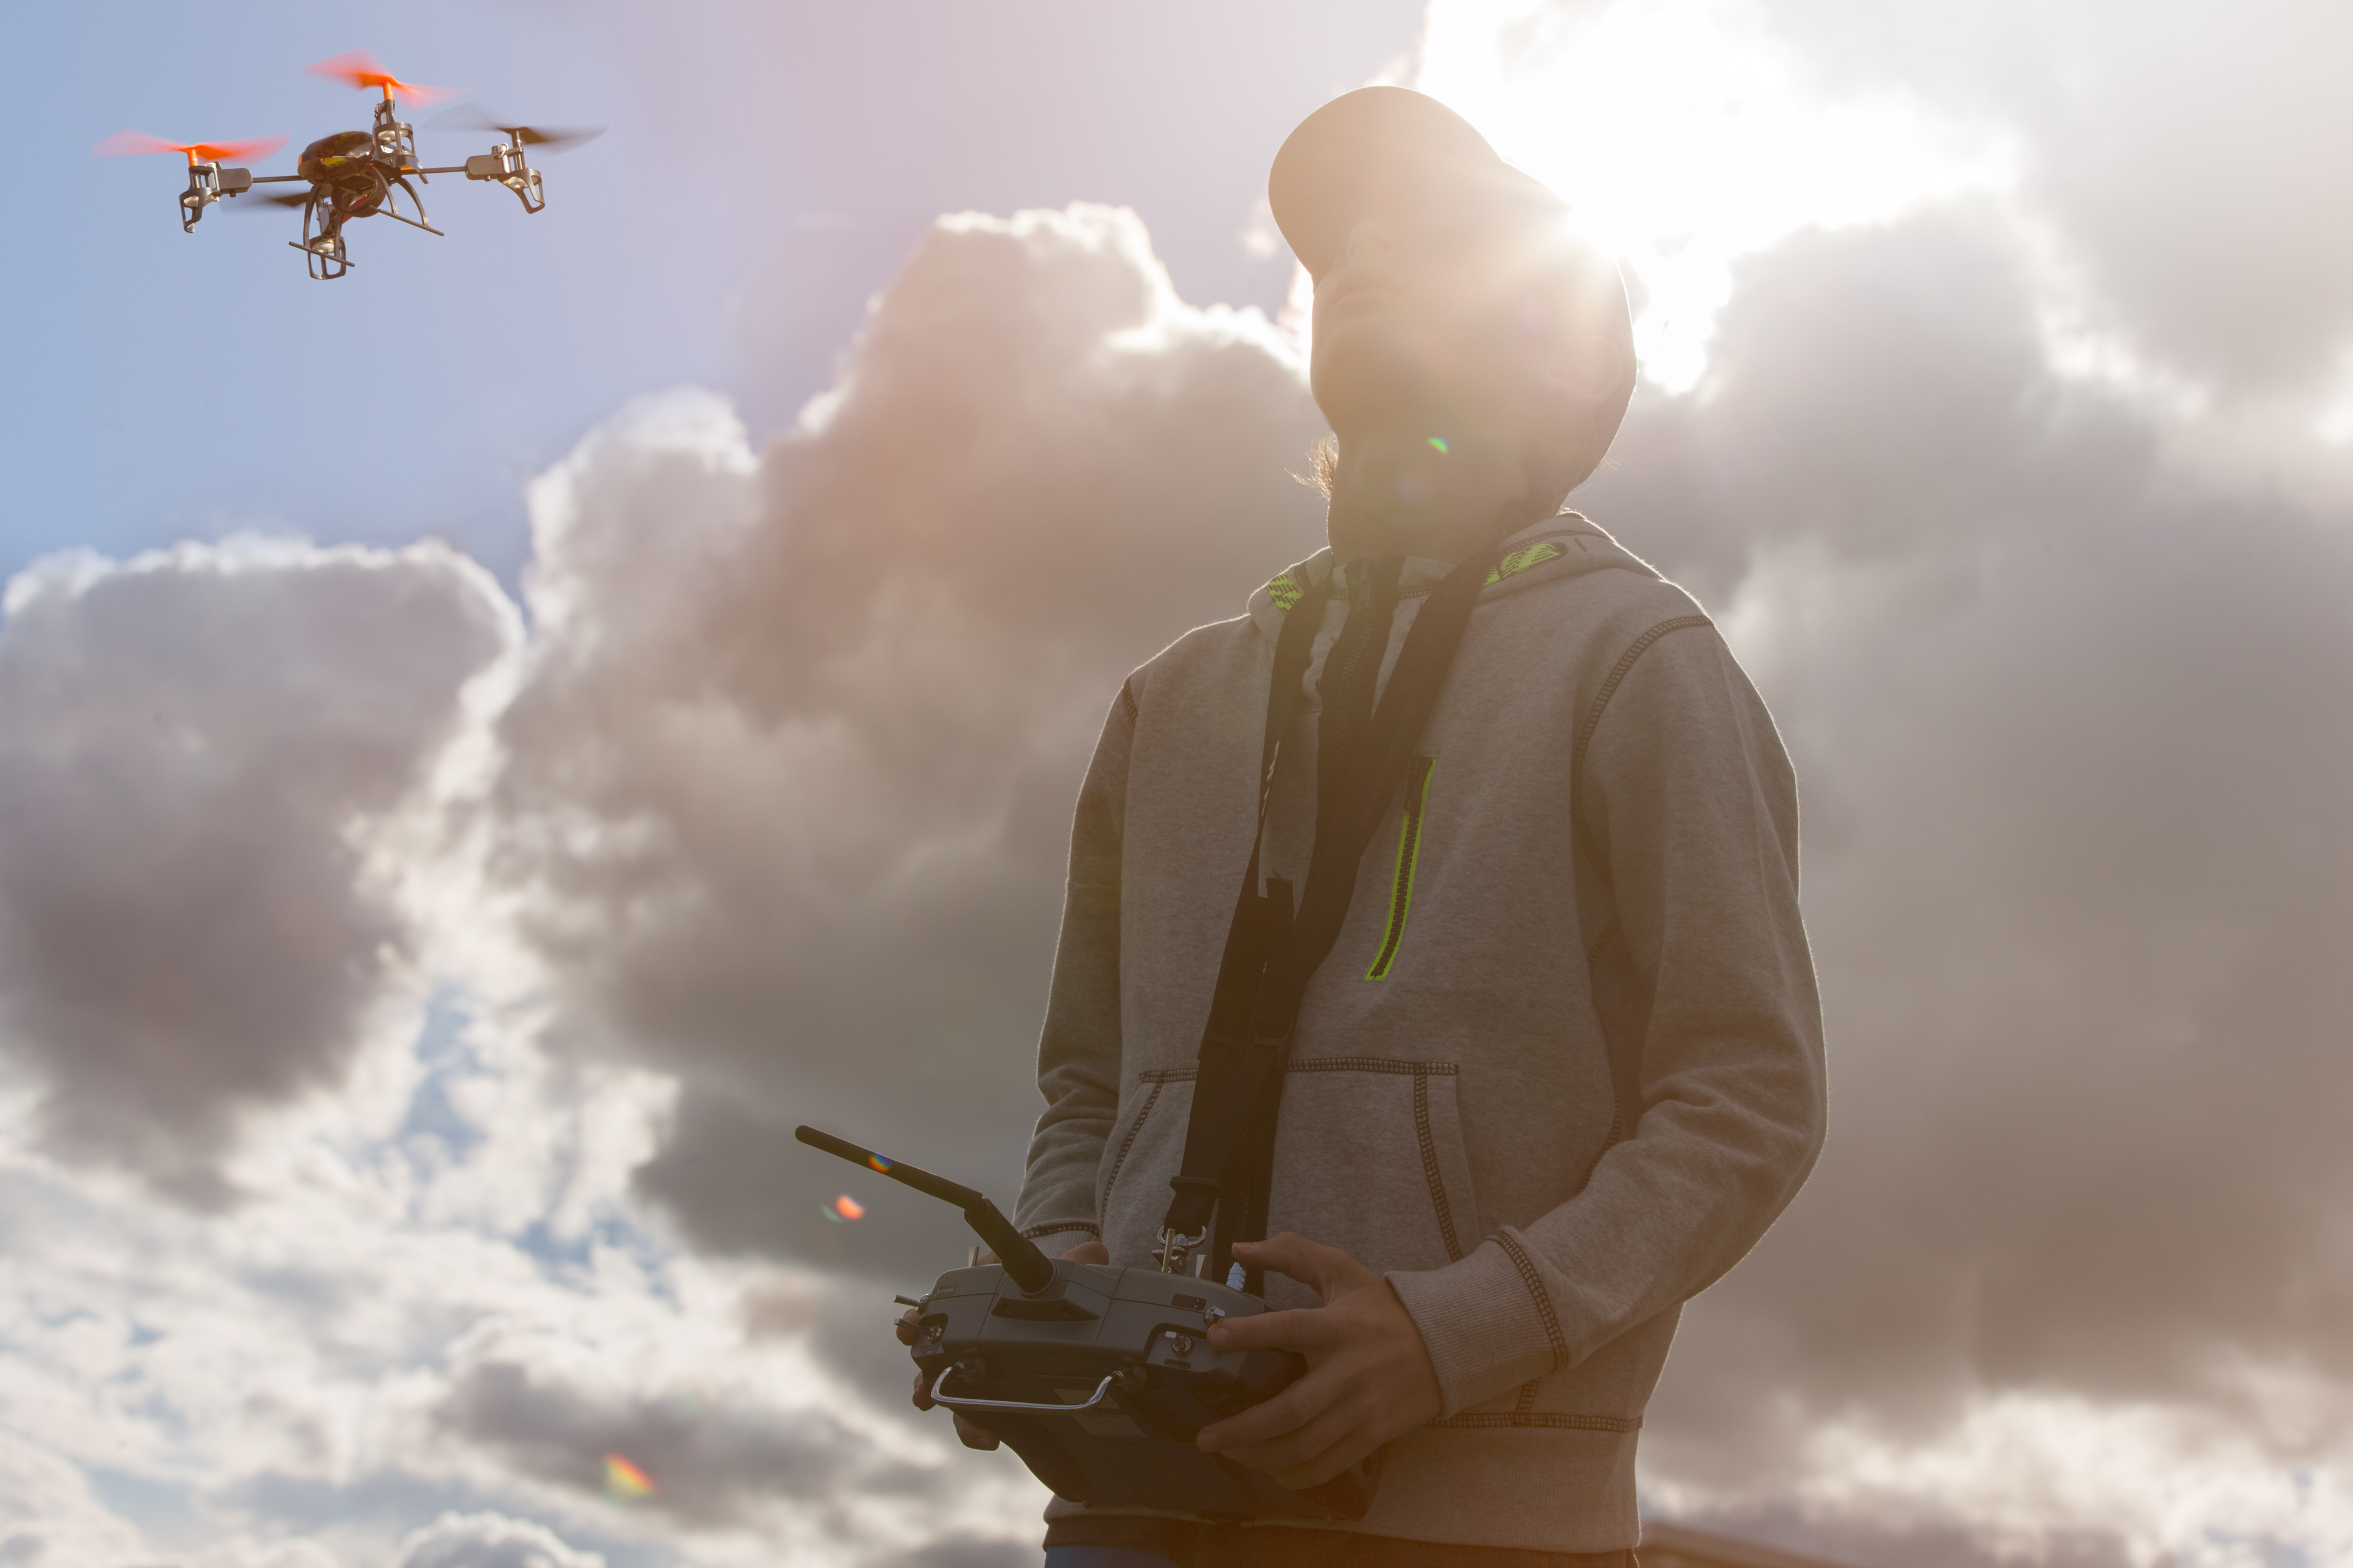 If you want to train as a drone pilot, it costs less than $3000 and a five day